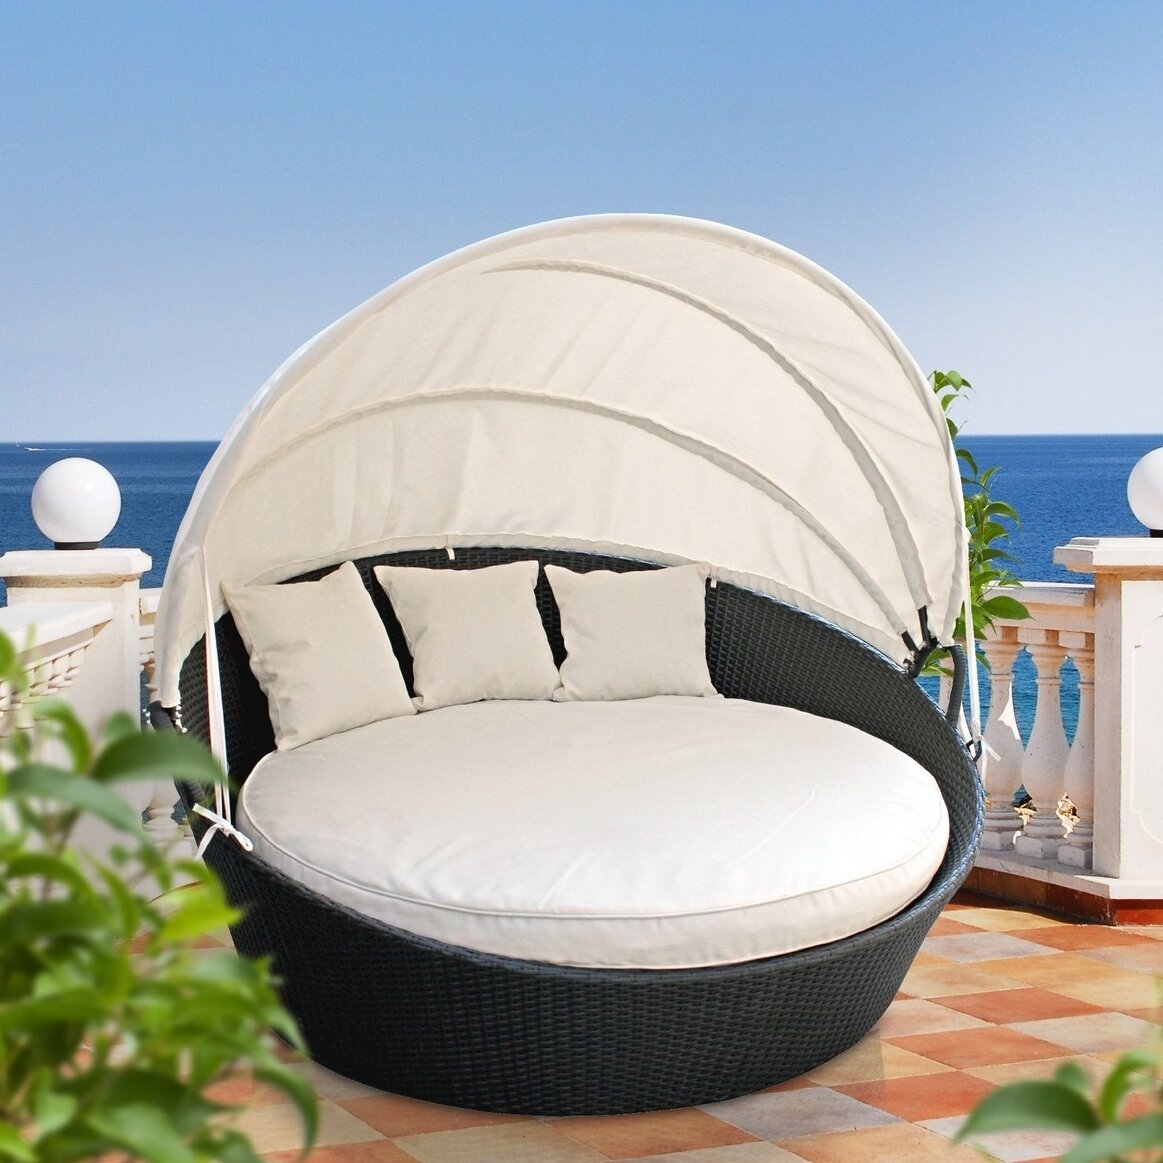 Brayden Studio Holden Canopy Outdoor Patio Daybed With Cushions Reviews Wayfair